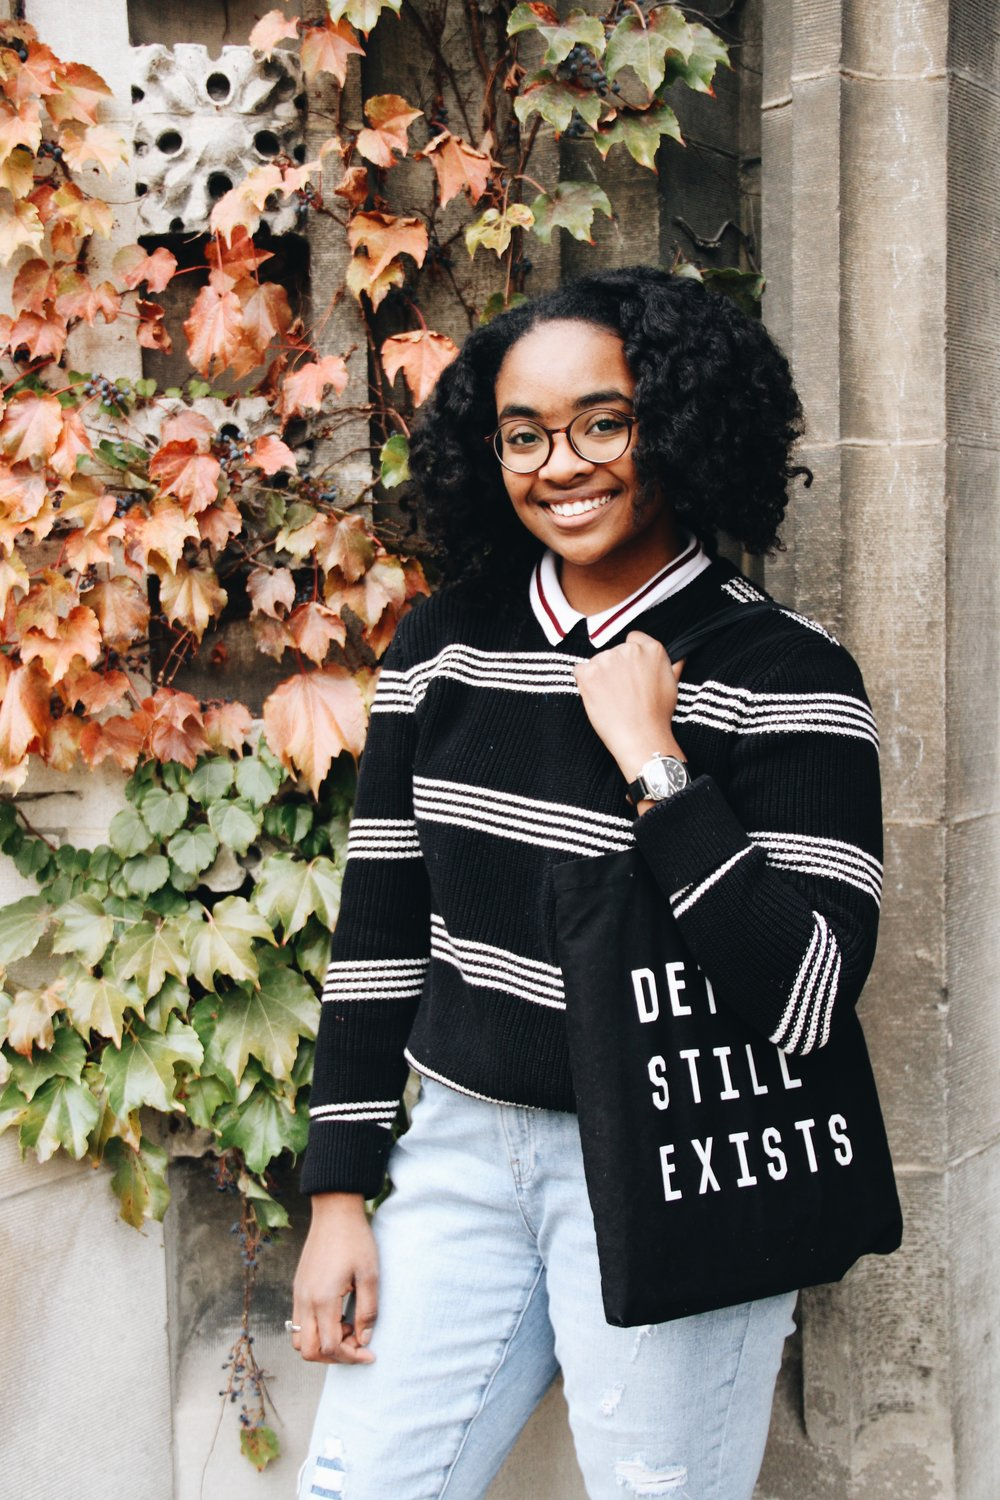 """Sweater: Gap, Collared Shirt: Von Maur, Jeans: Gap, Shoes: UGG,""""Detroit Still Exists"""" Tote:A Detroit local brand, Definitive Style Exclusive (check them out, they have awesome stuff made right in Detroit), Watch: Shinola (also amazing and made in Detroit)"""